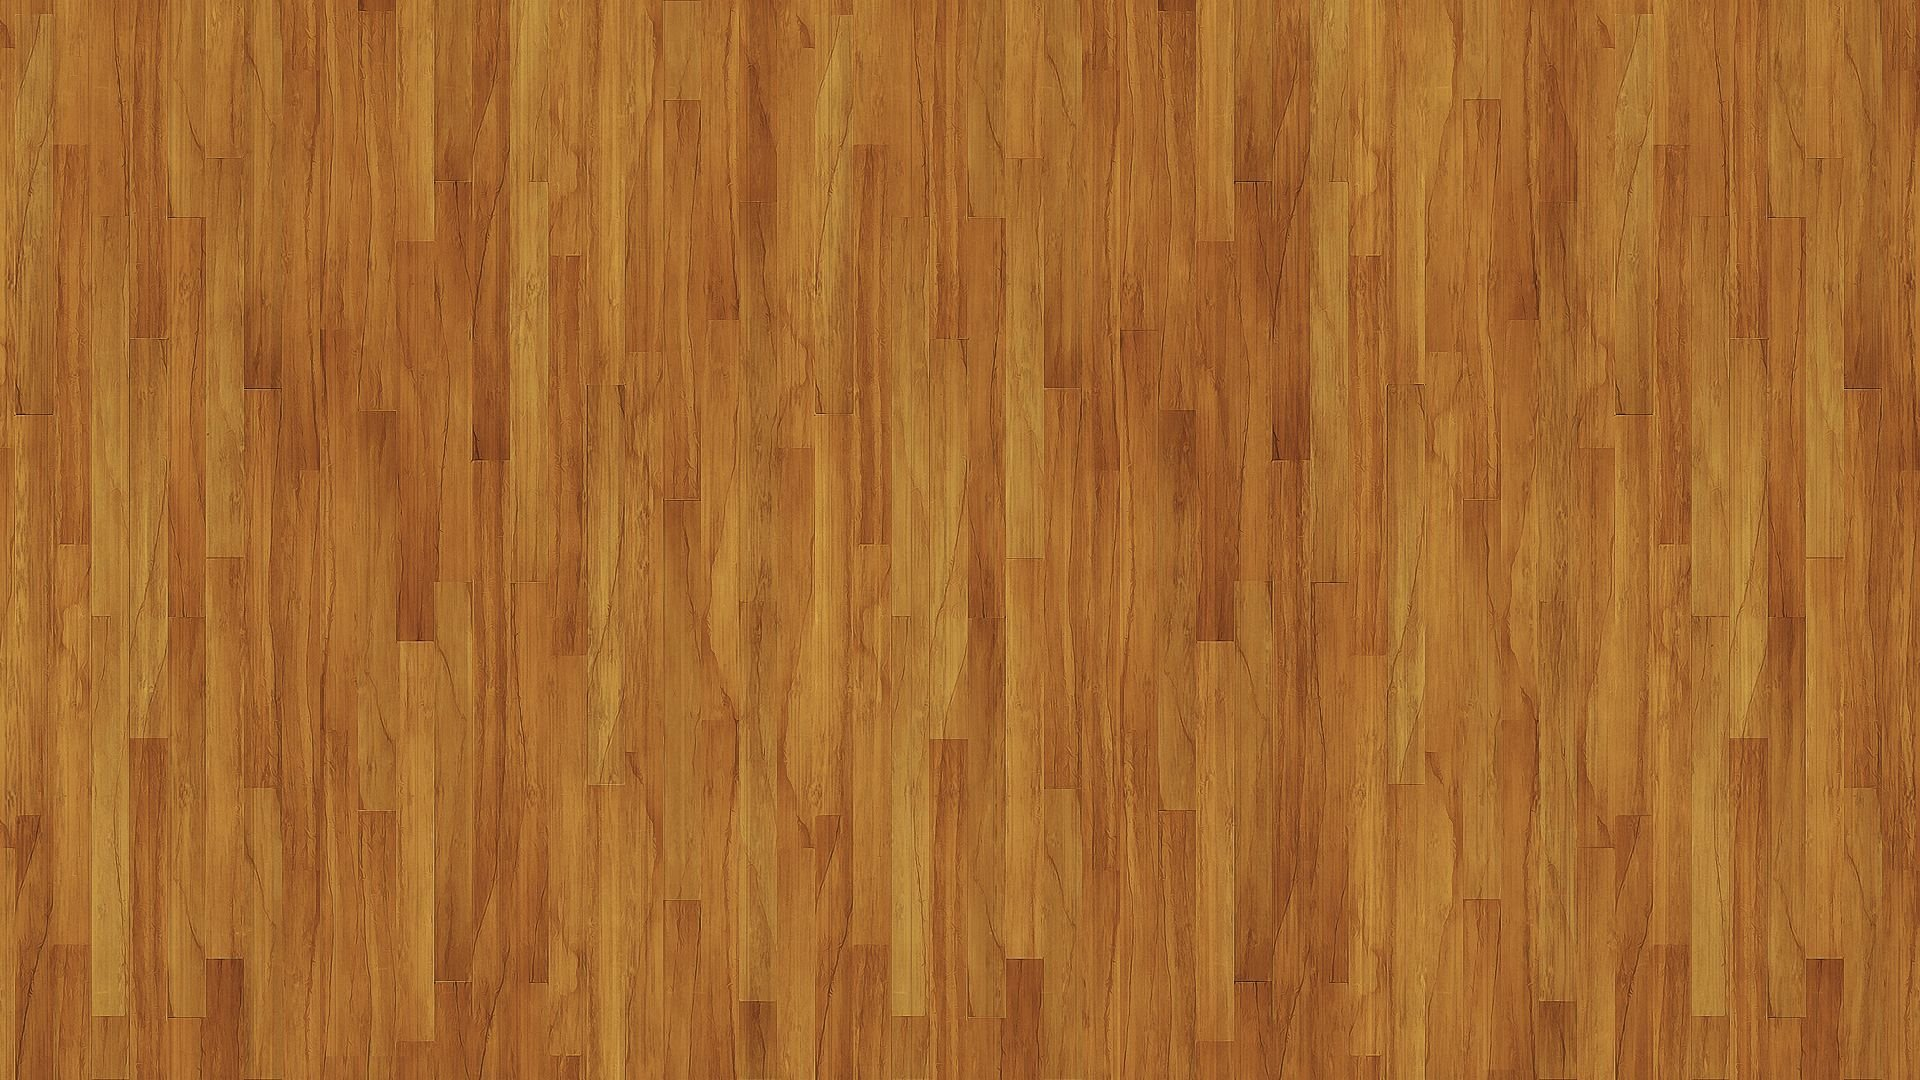 Wood floor wallpaper wallpapersafari for Printable flooring